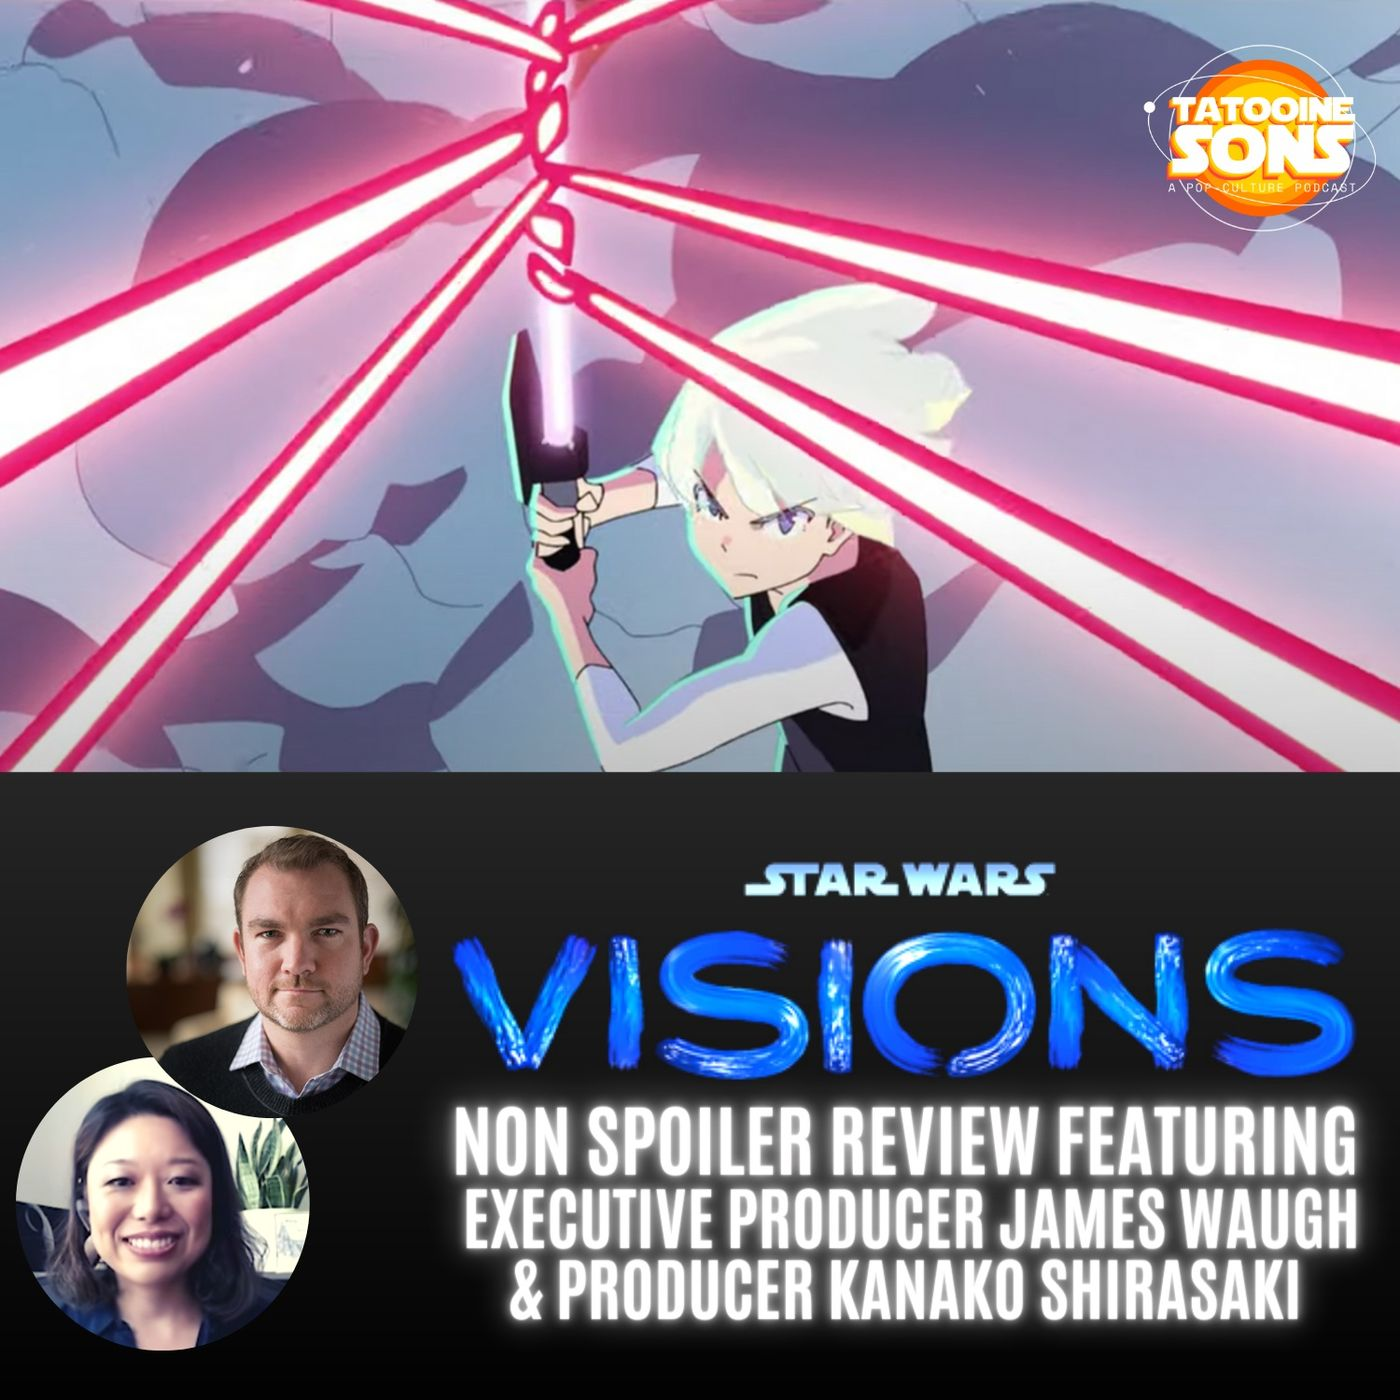 Spoiler Free Review of Star Wars Visions PLUS Interview with Producers James Waugh and Kanako Shirasaki